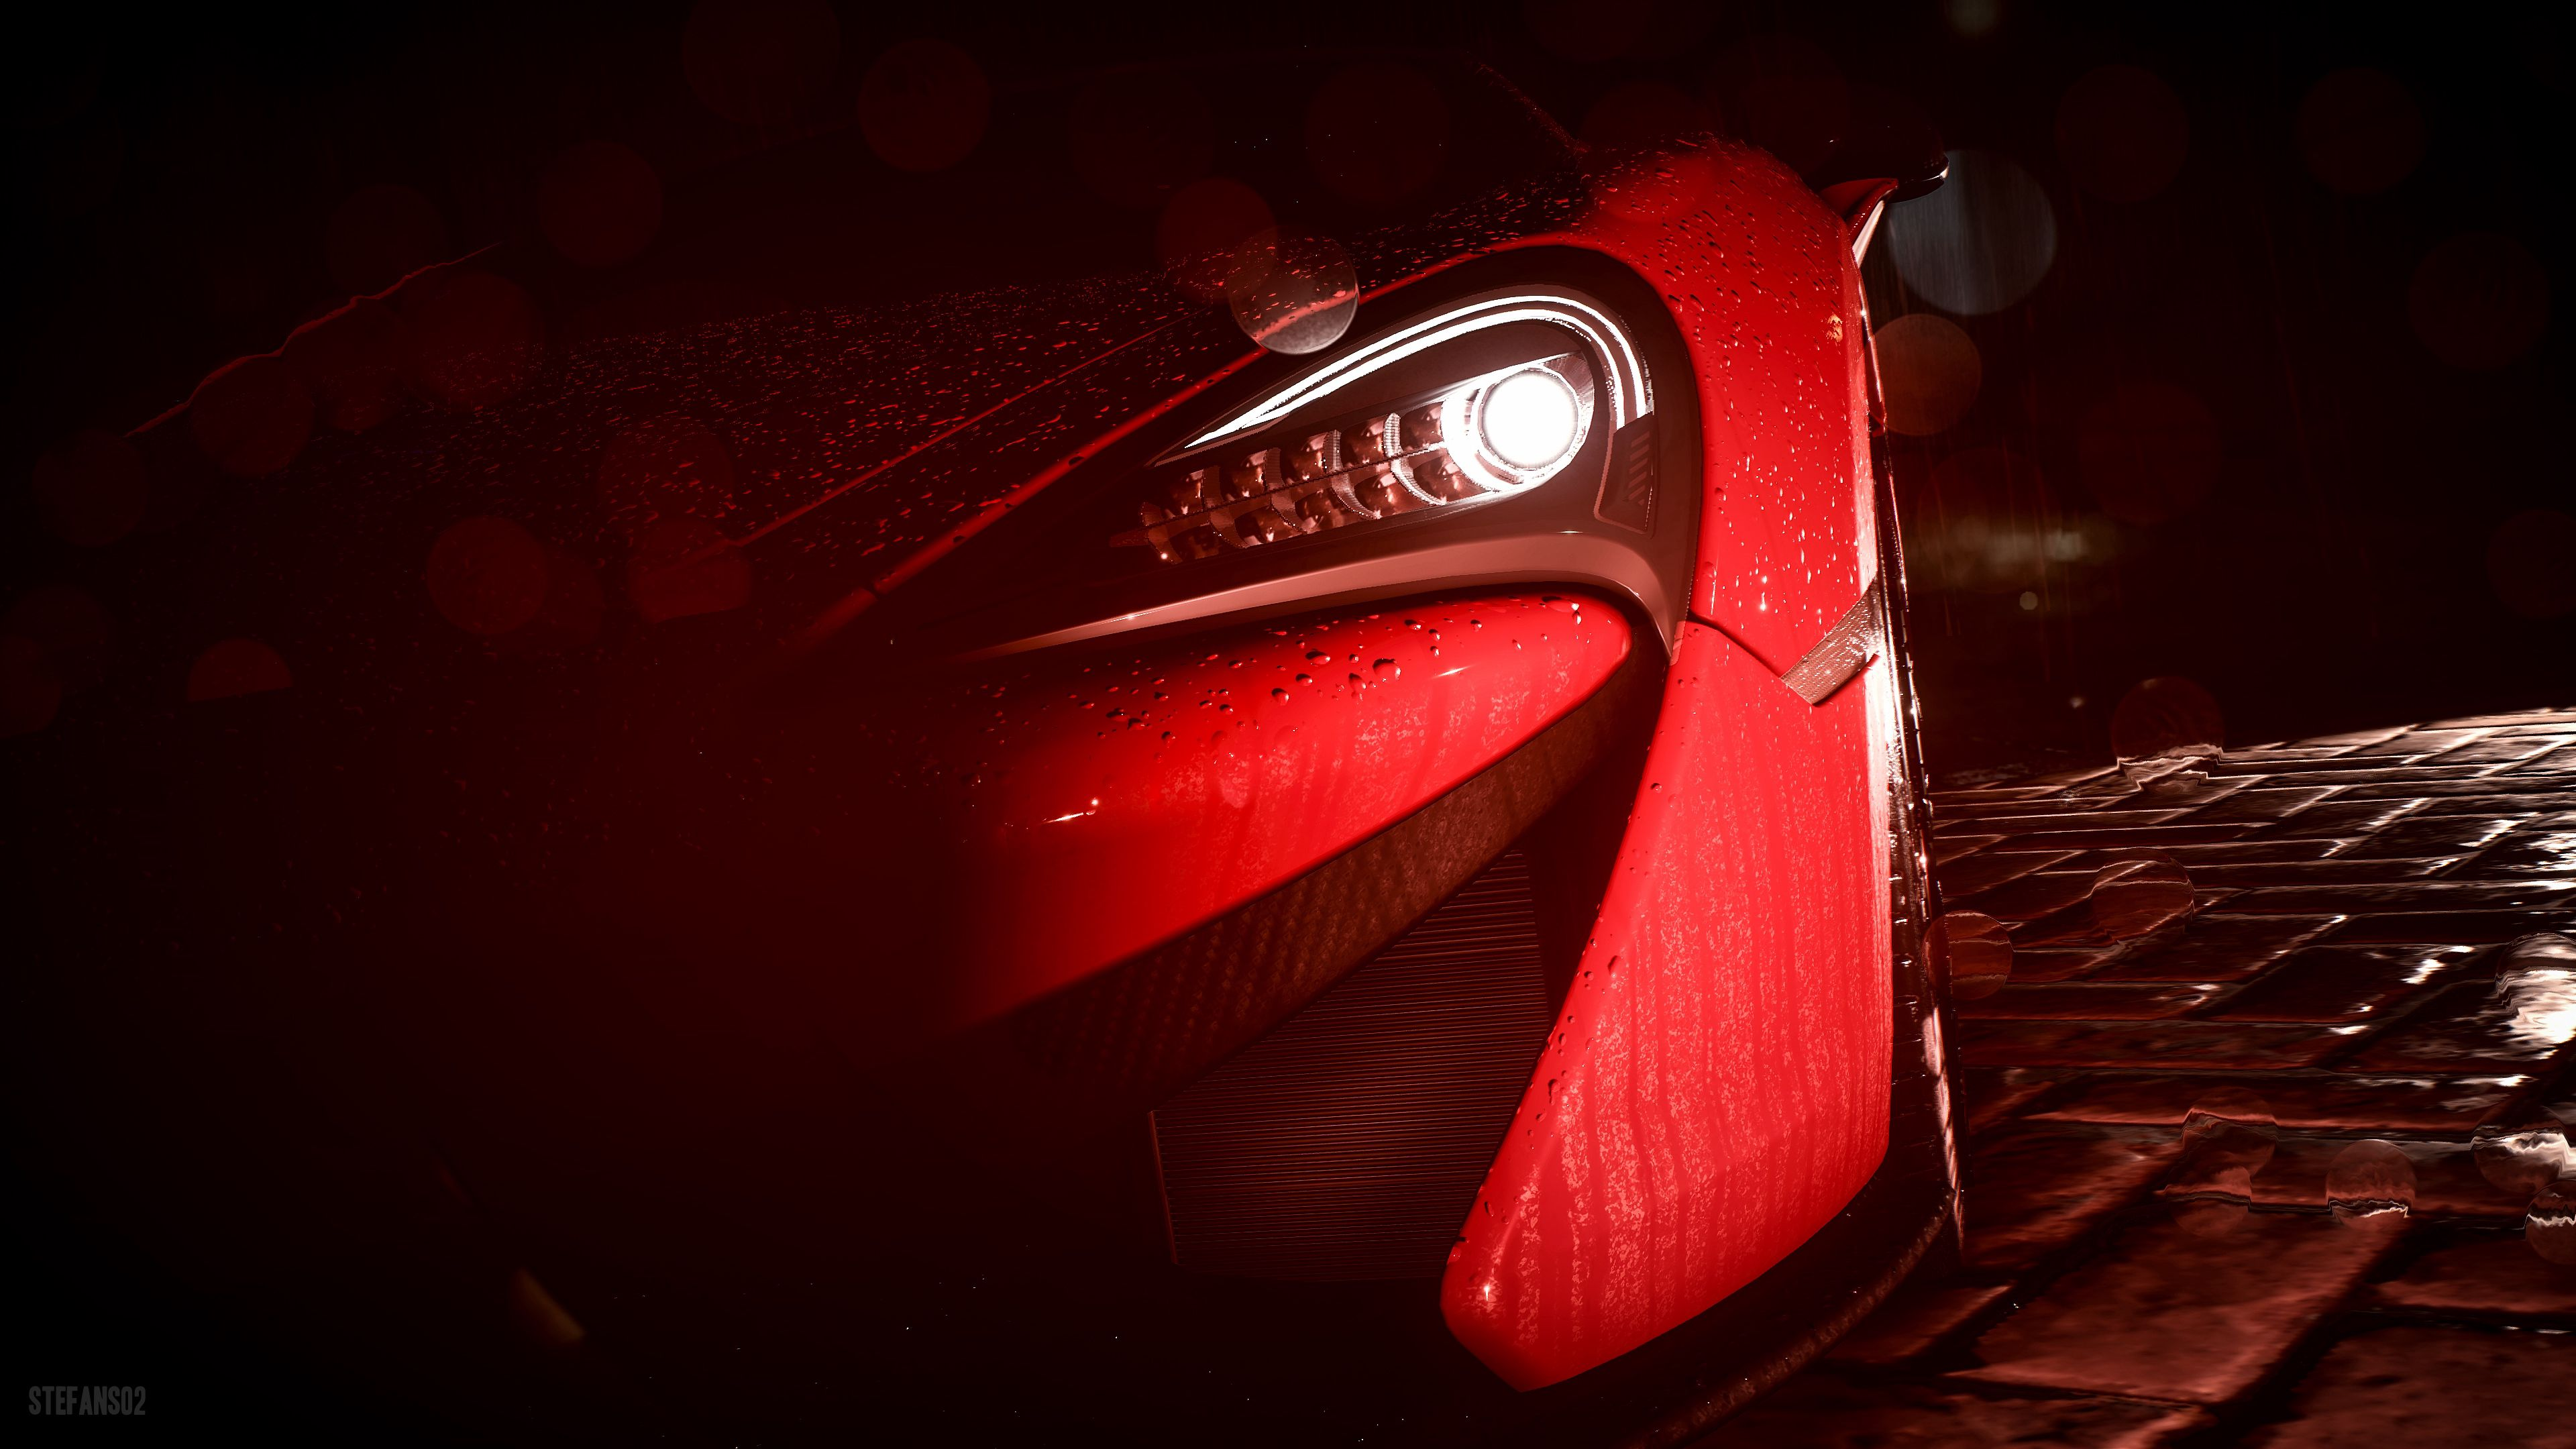 155233 download wallpaper Cars, Car, Headlight, Drops, Rain, Art screensavers and pictures for free